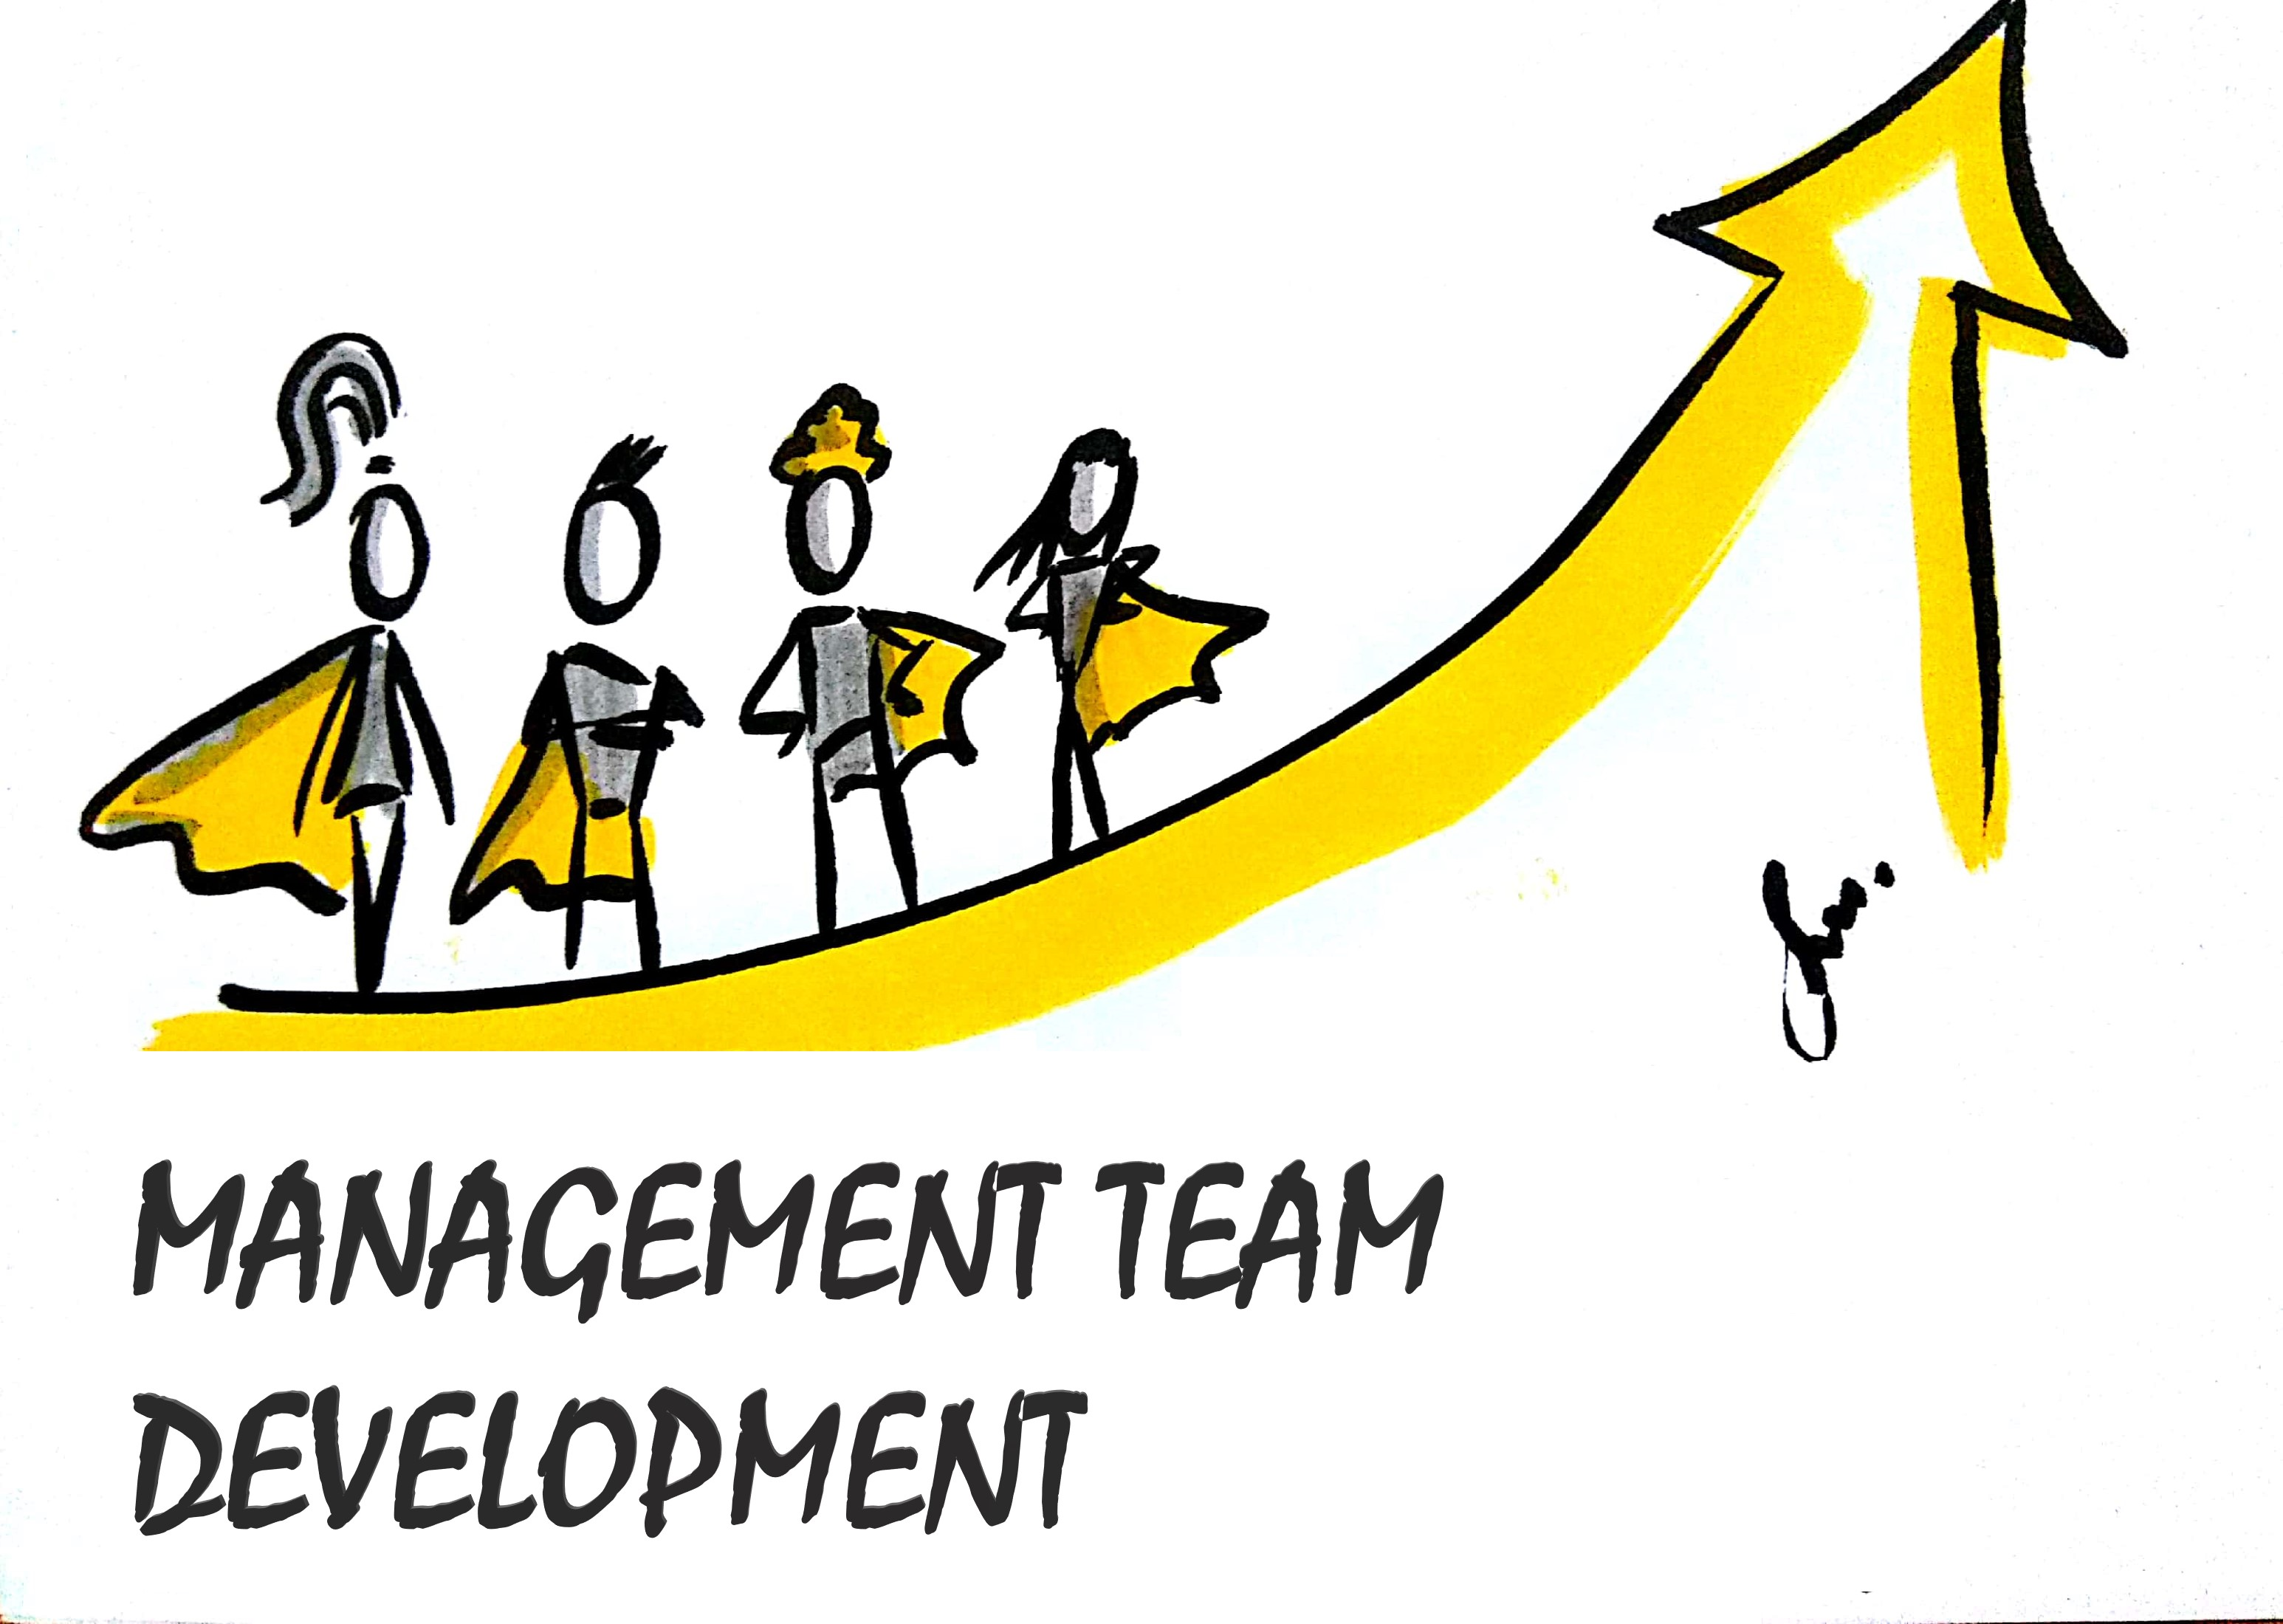 Management Team Development